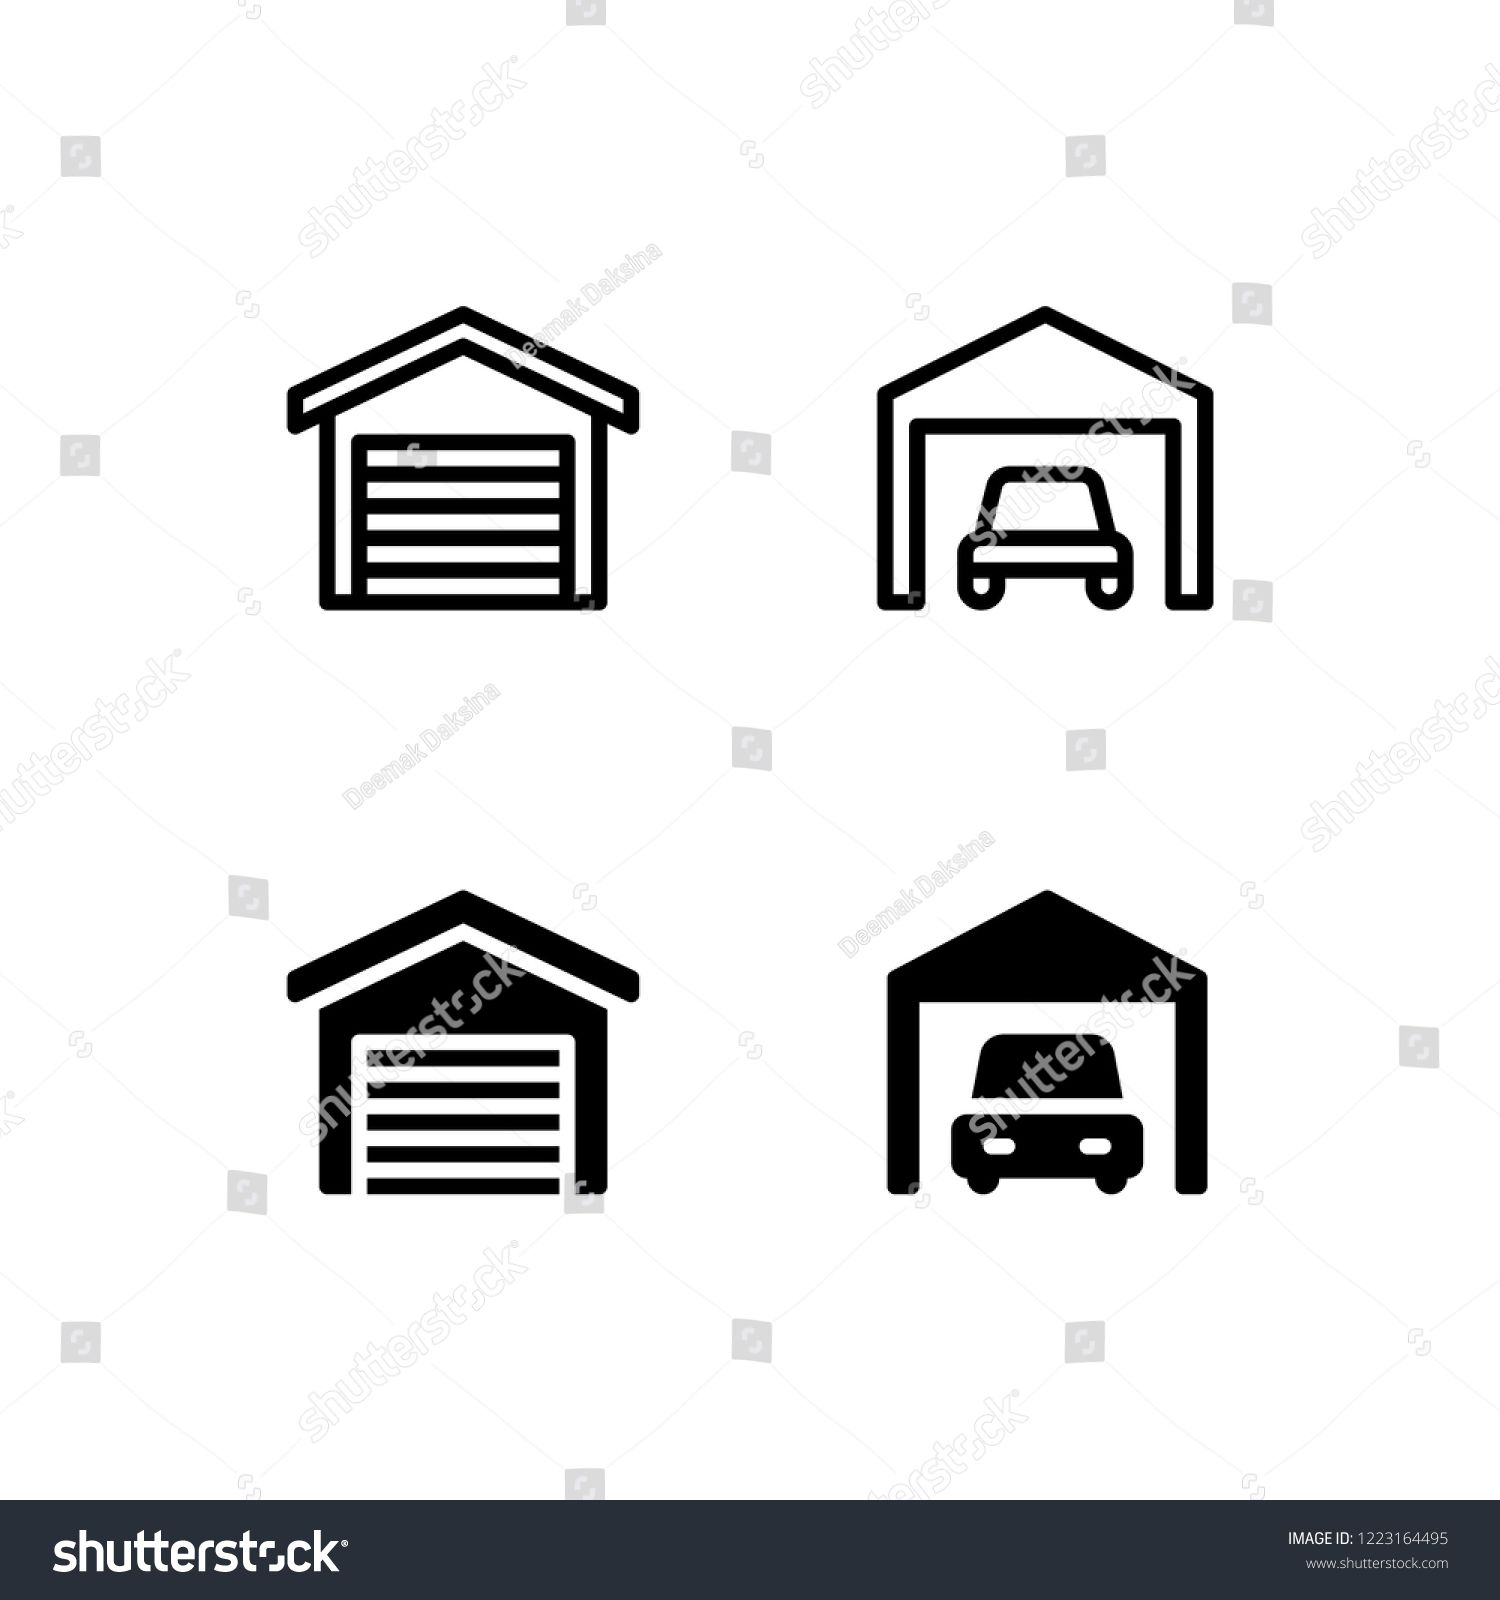 Garage Icon Design Garage, Car, House, Home, Parking, Icon